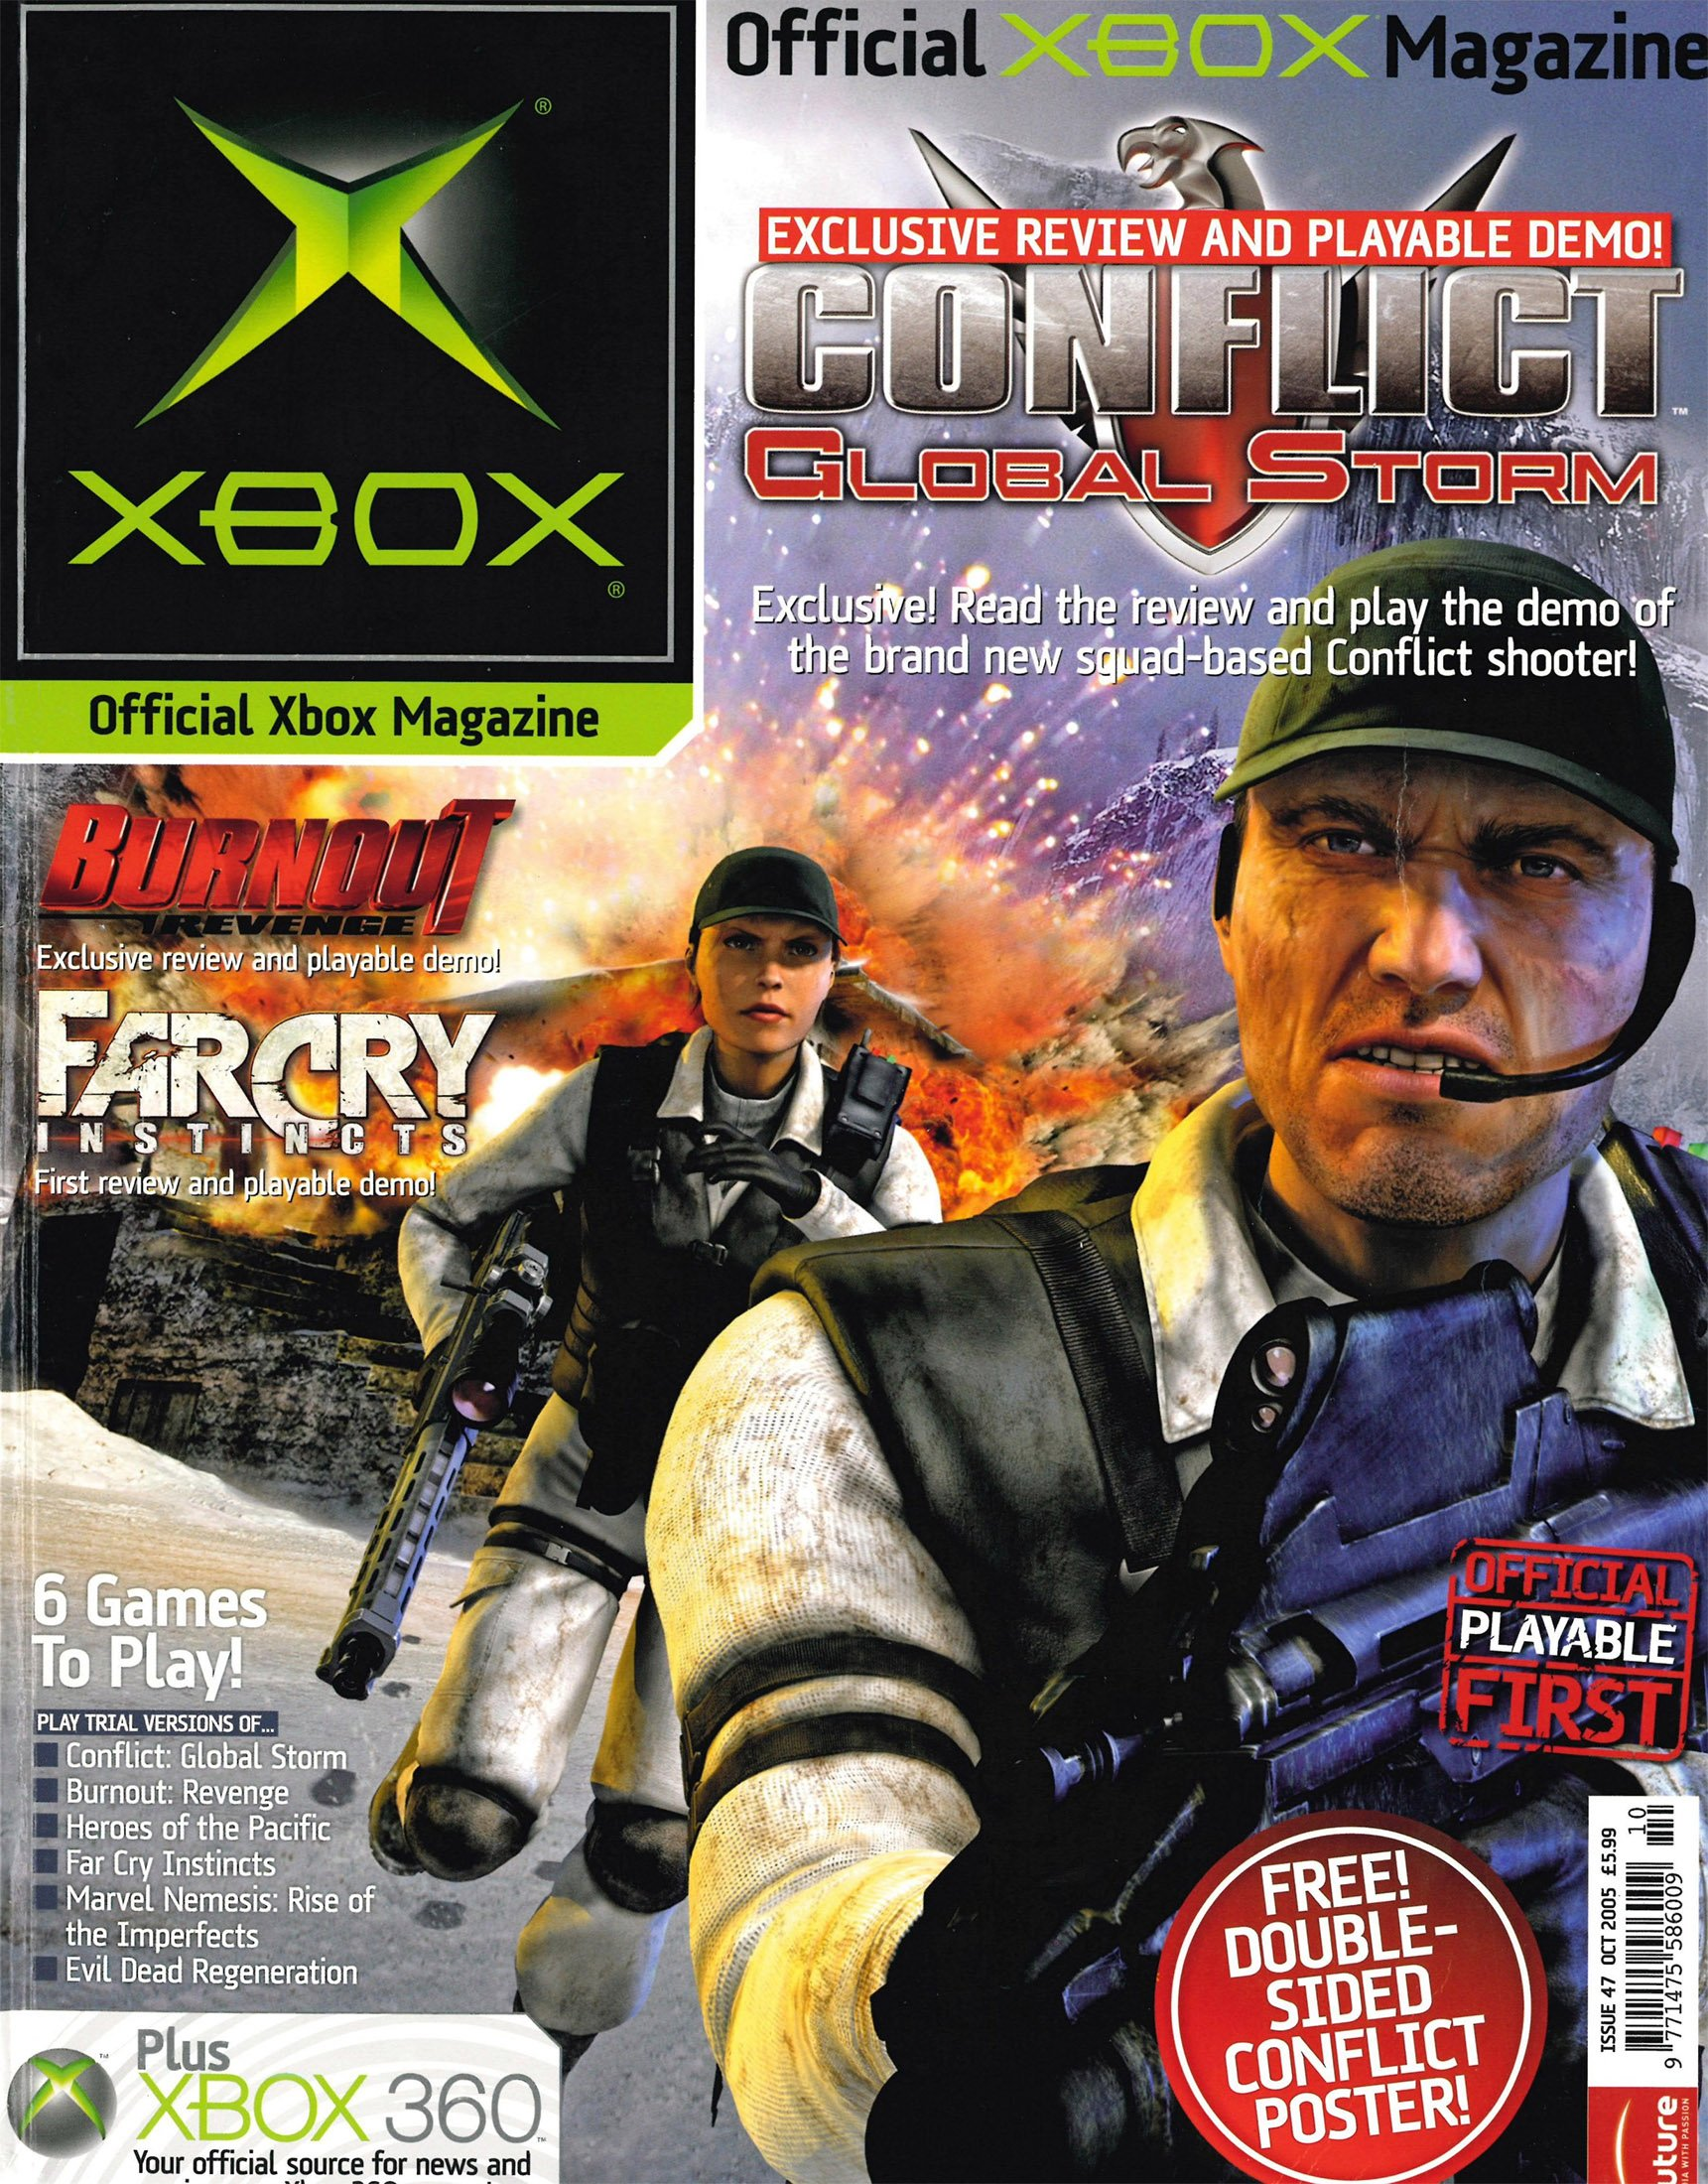 Official UK Xbox Magazine Issue 47 - October 2005